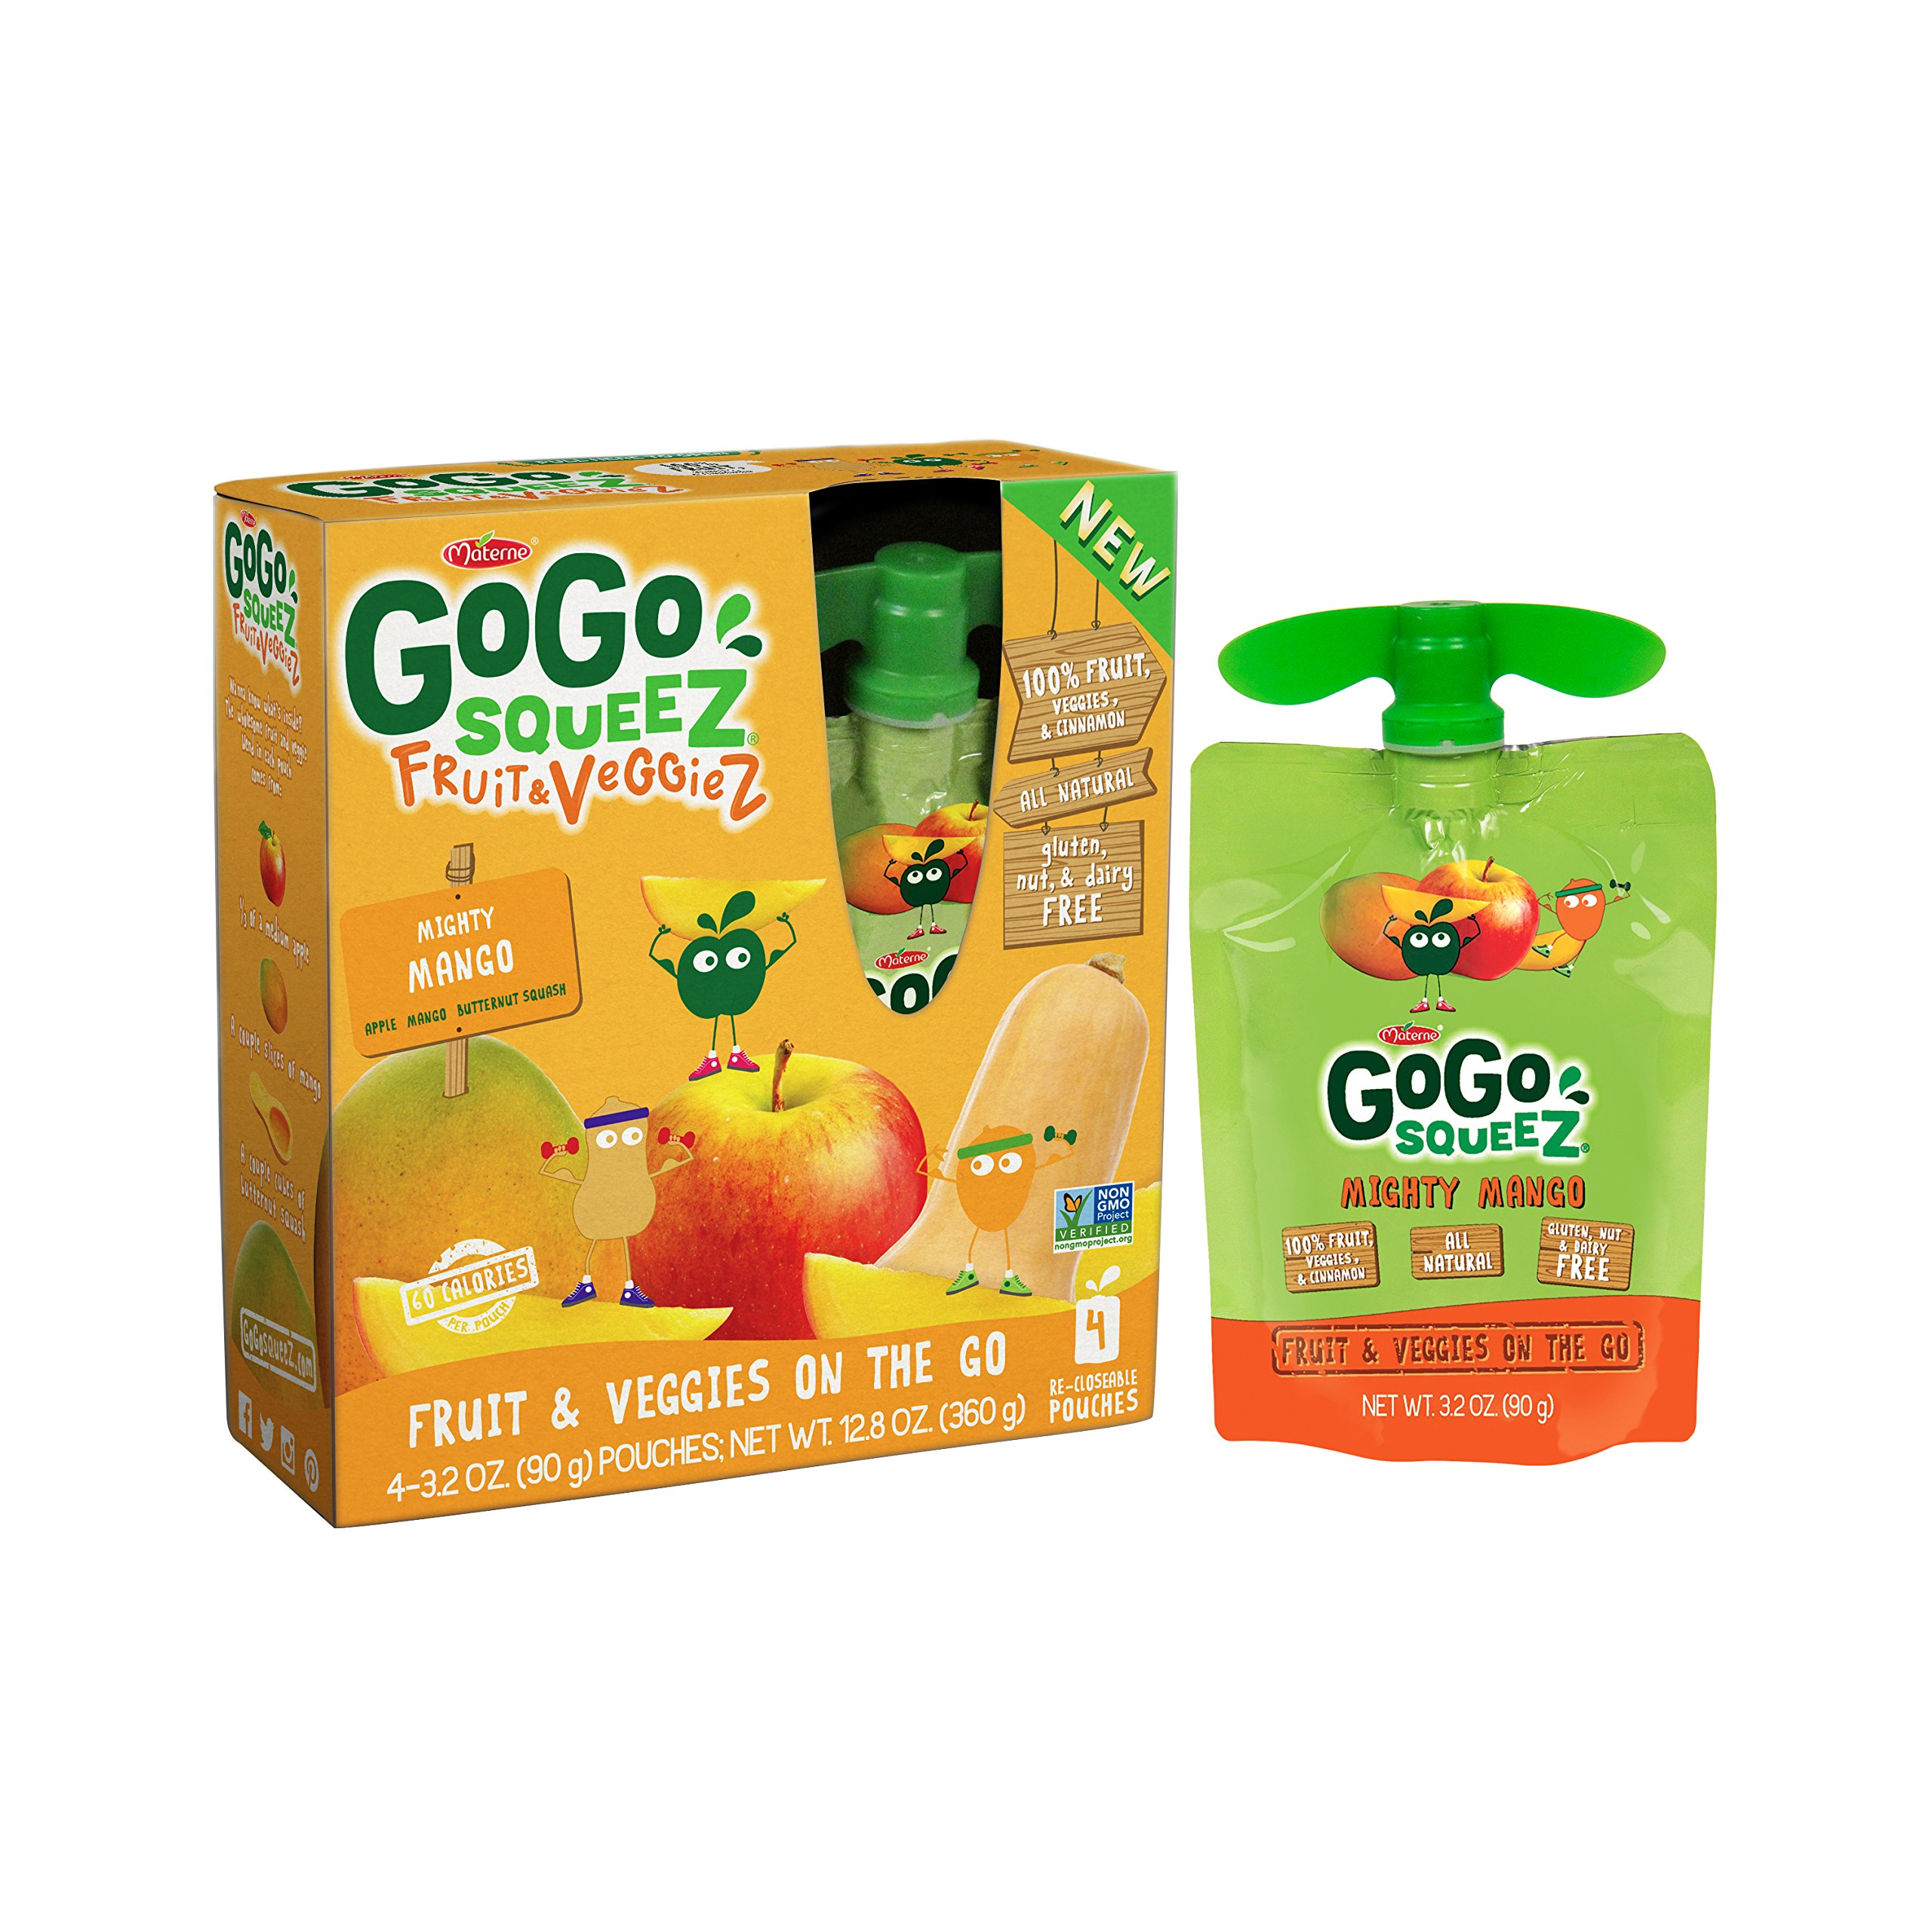 GoGo SqueeZ Fruit & VeggieZ on the Go, Apple Mango Butternut Squash, 3.2 Ounce Portable BPA-Free Pouches, Gluten-Free, 48 Total Pouches (12 Boxes with 4 Pouches Each)